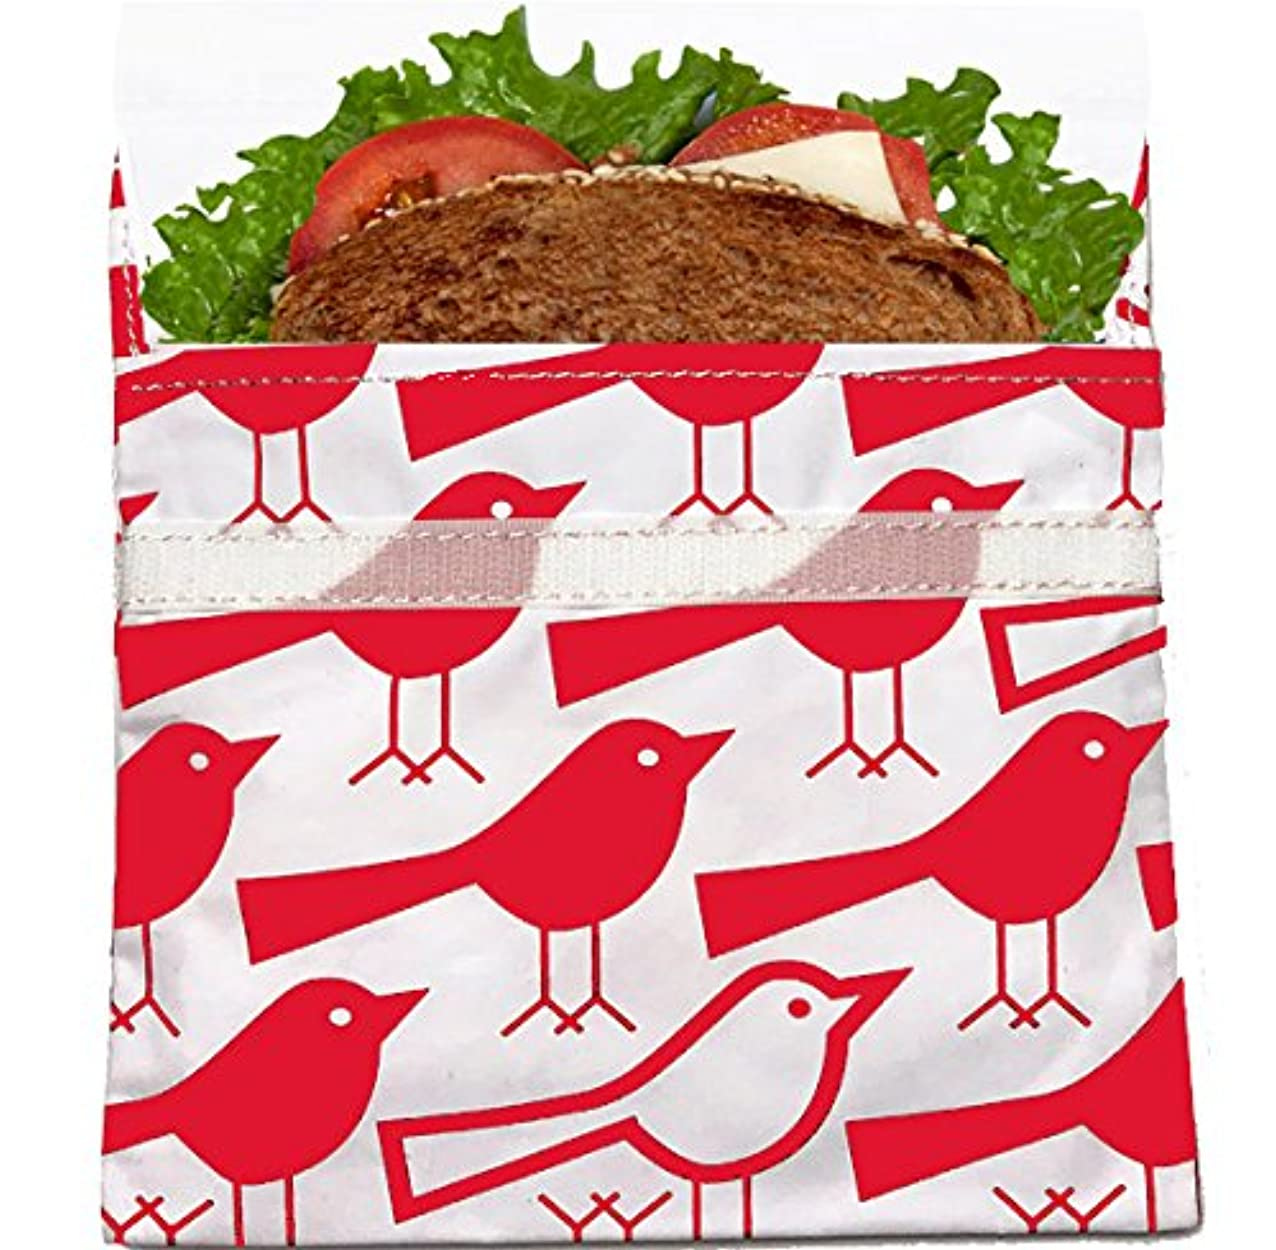 状態あえてしなければならないLunchskins Reusable Sandwich Bag, Red Bird by LunchSkins